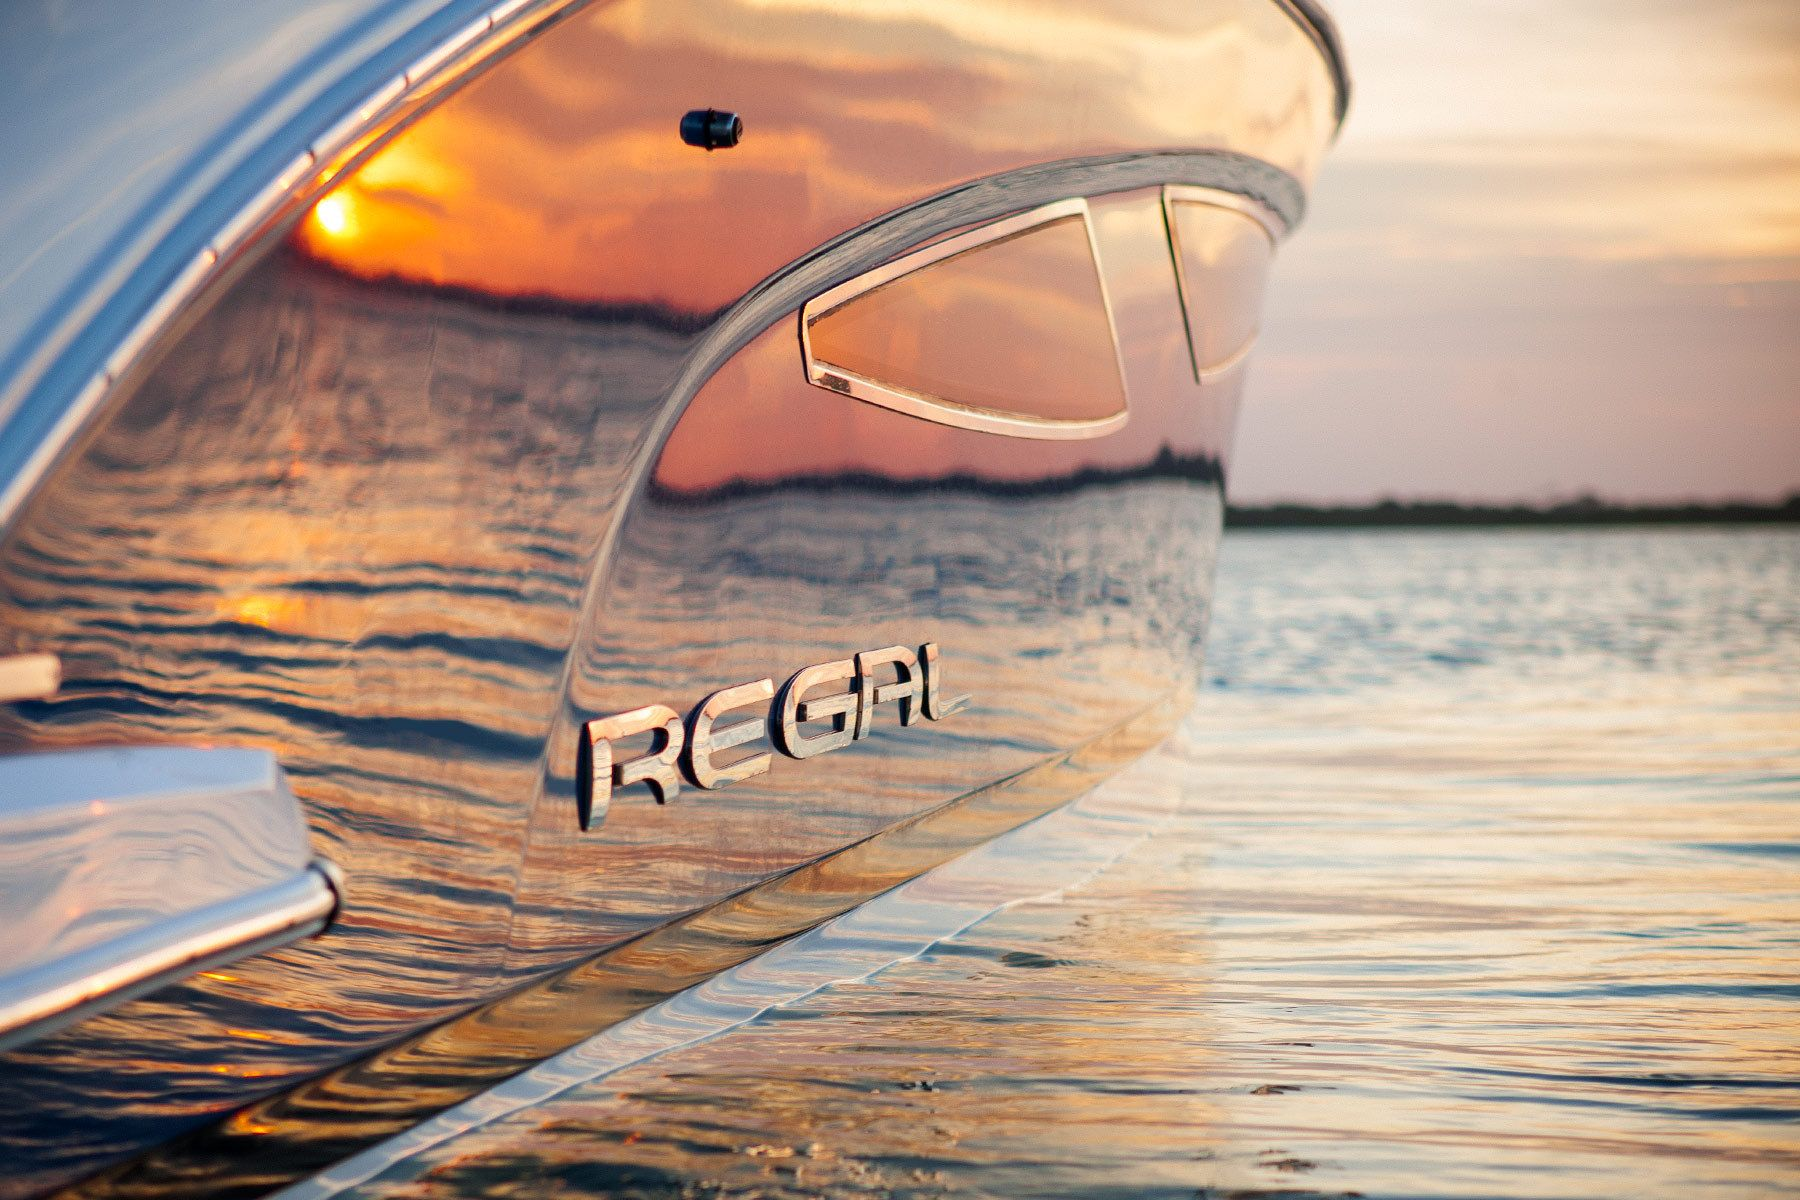 Client: Regal Boats